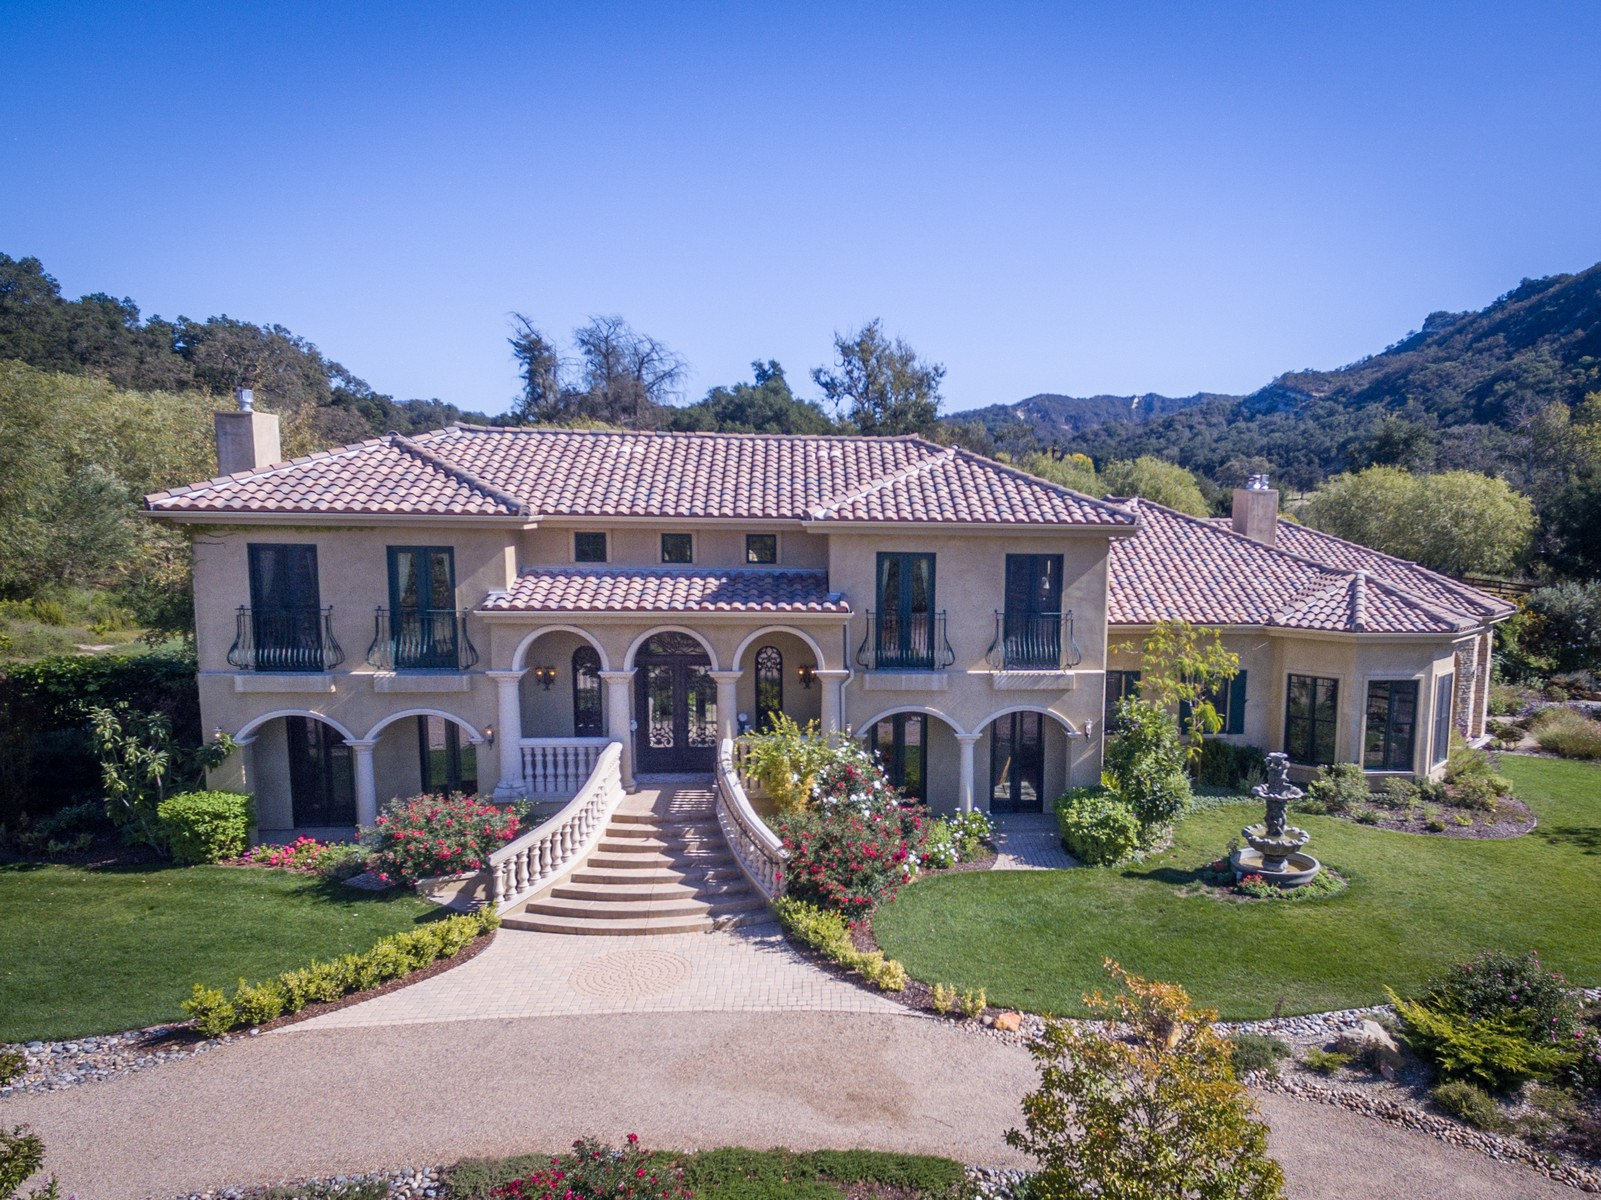 Villa per Vendita alle ore Willow Creek Ranch 1494 Big Baldy Way Arroyo Grande, California, 93420 Stati Uniti